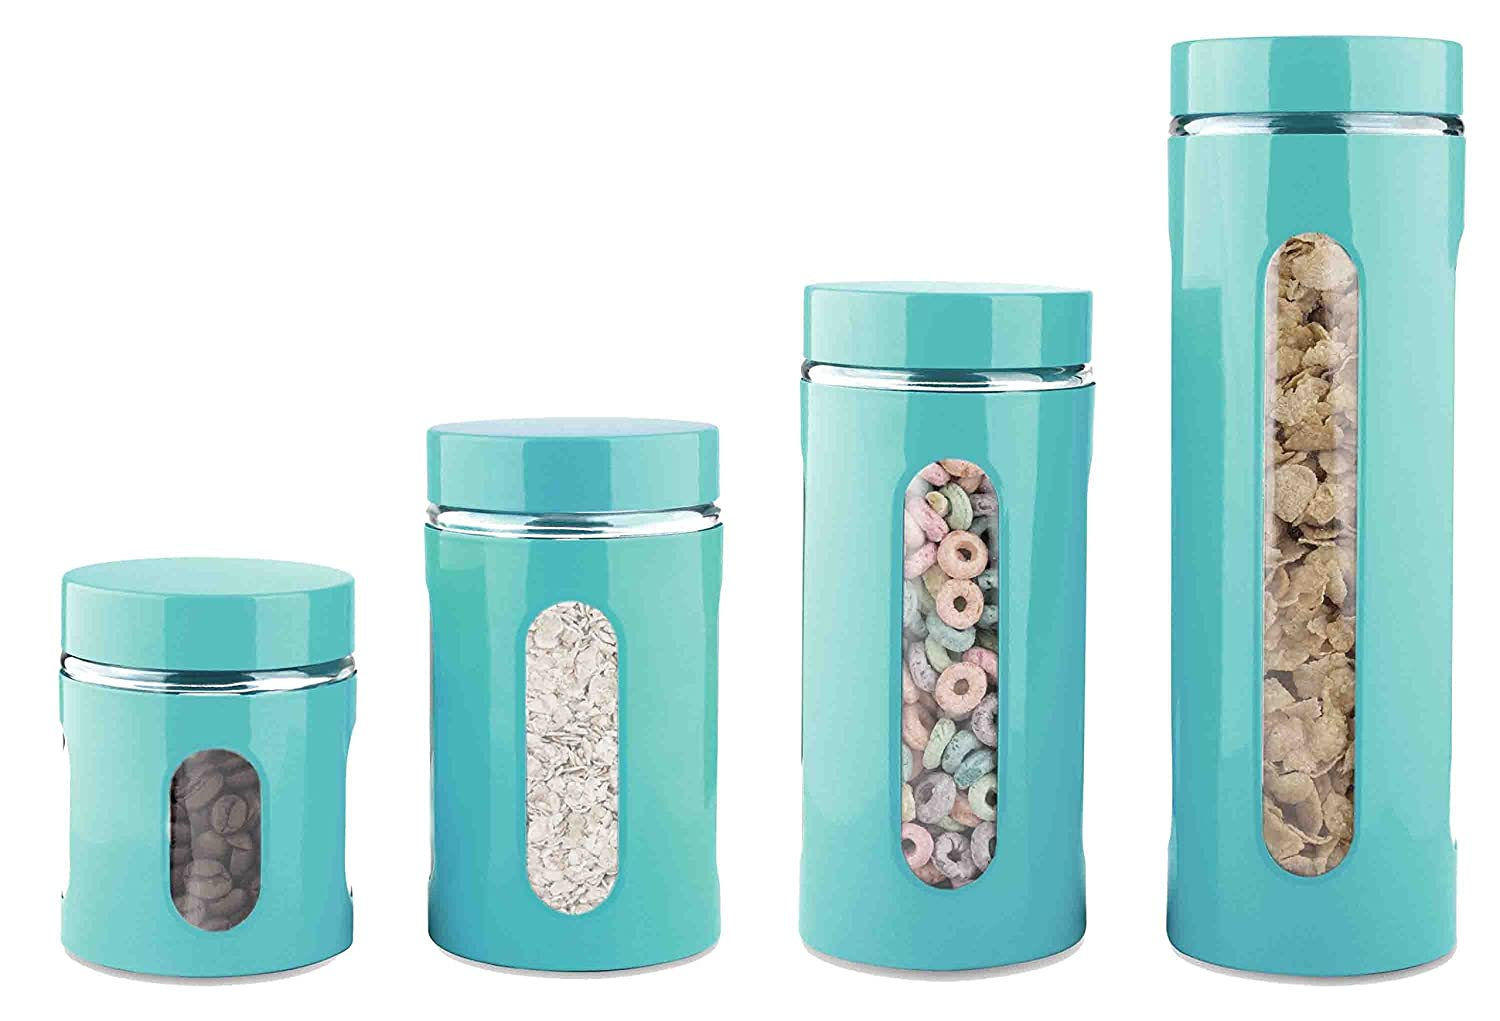 Amazon.com: Home Basics 4-Piece Glass Canister Cylinder Set with ...